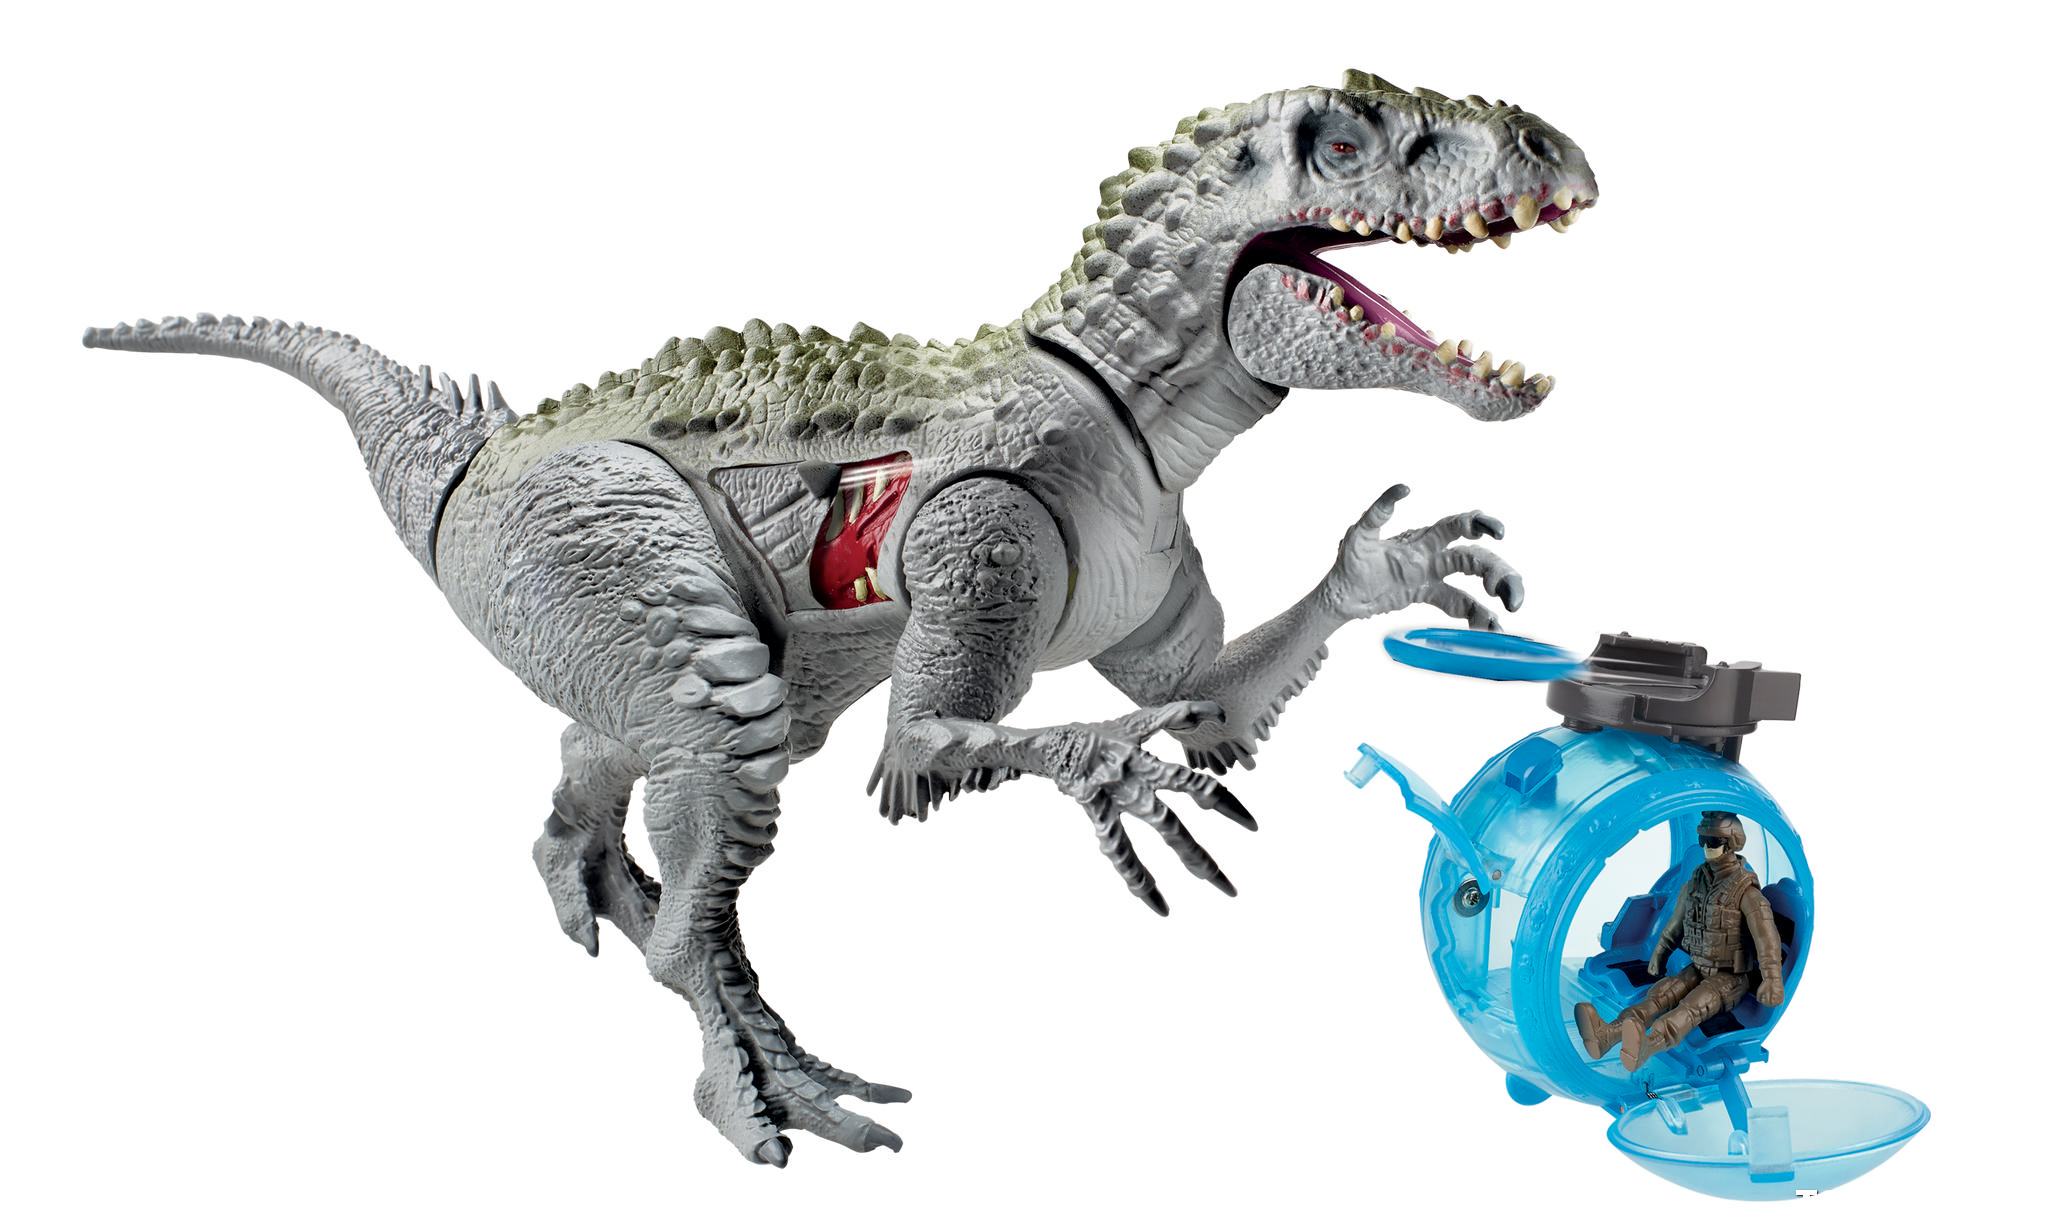 Toys From Hasbro : Jurassic world spoiler thread boy do i hate being